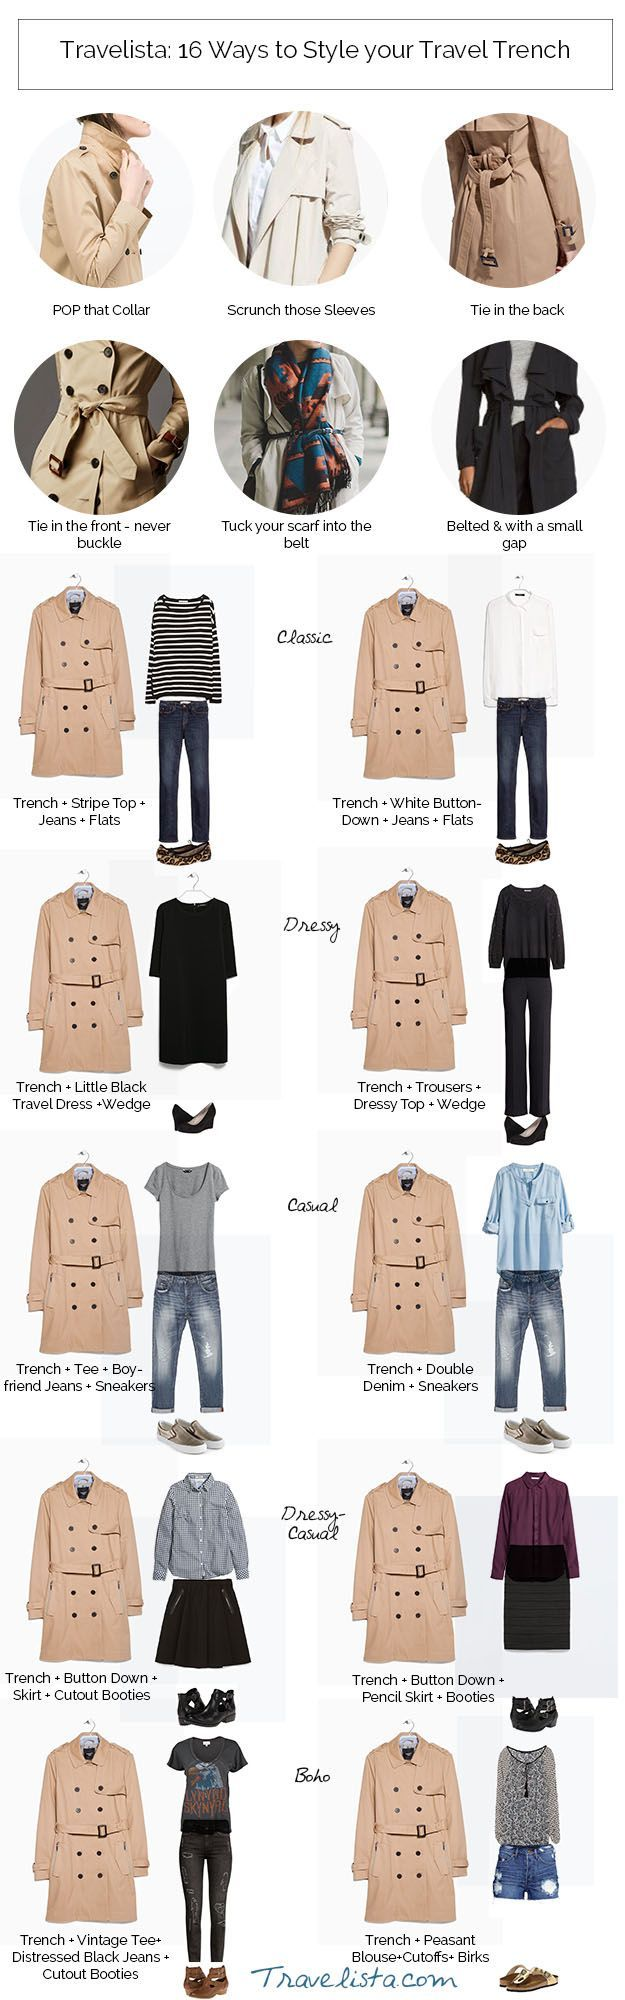 16 ways to style your travel trench coat | Travelista